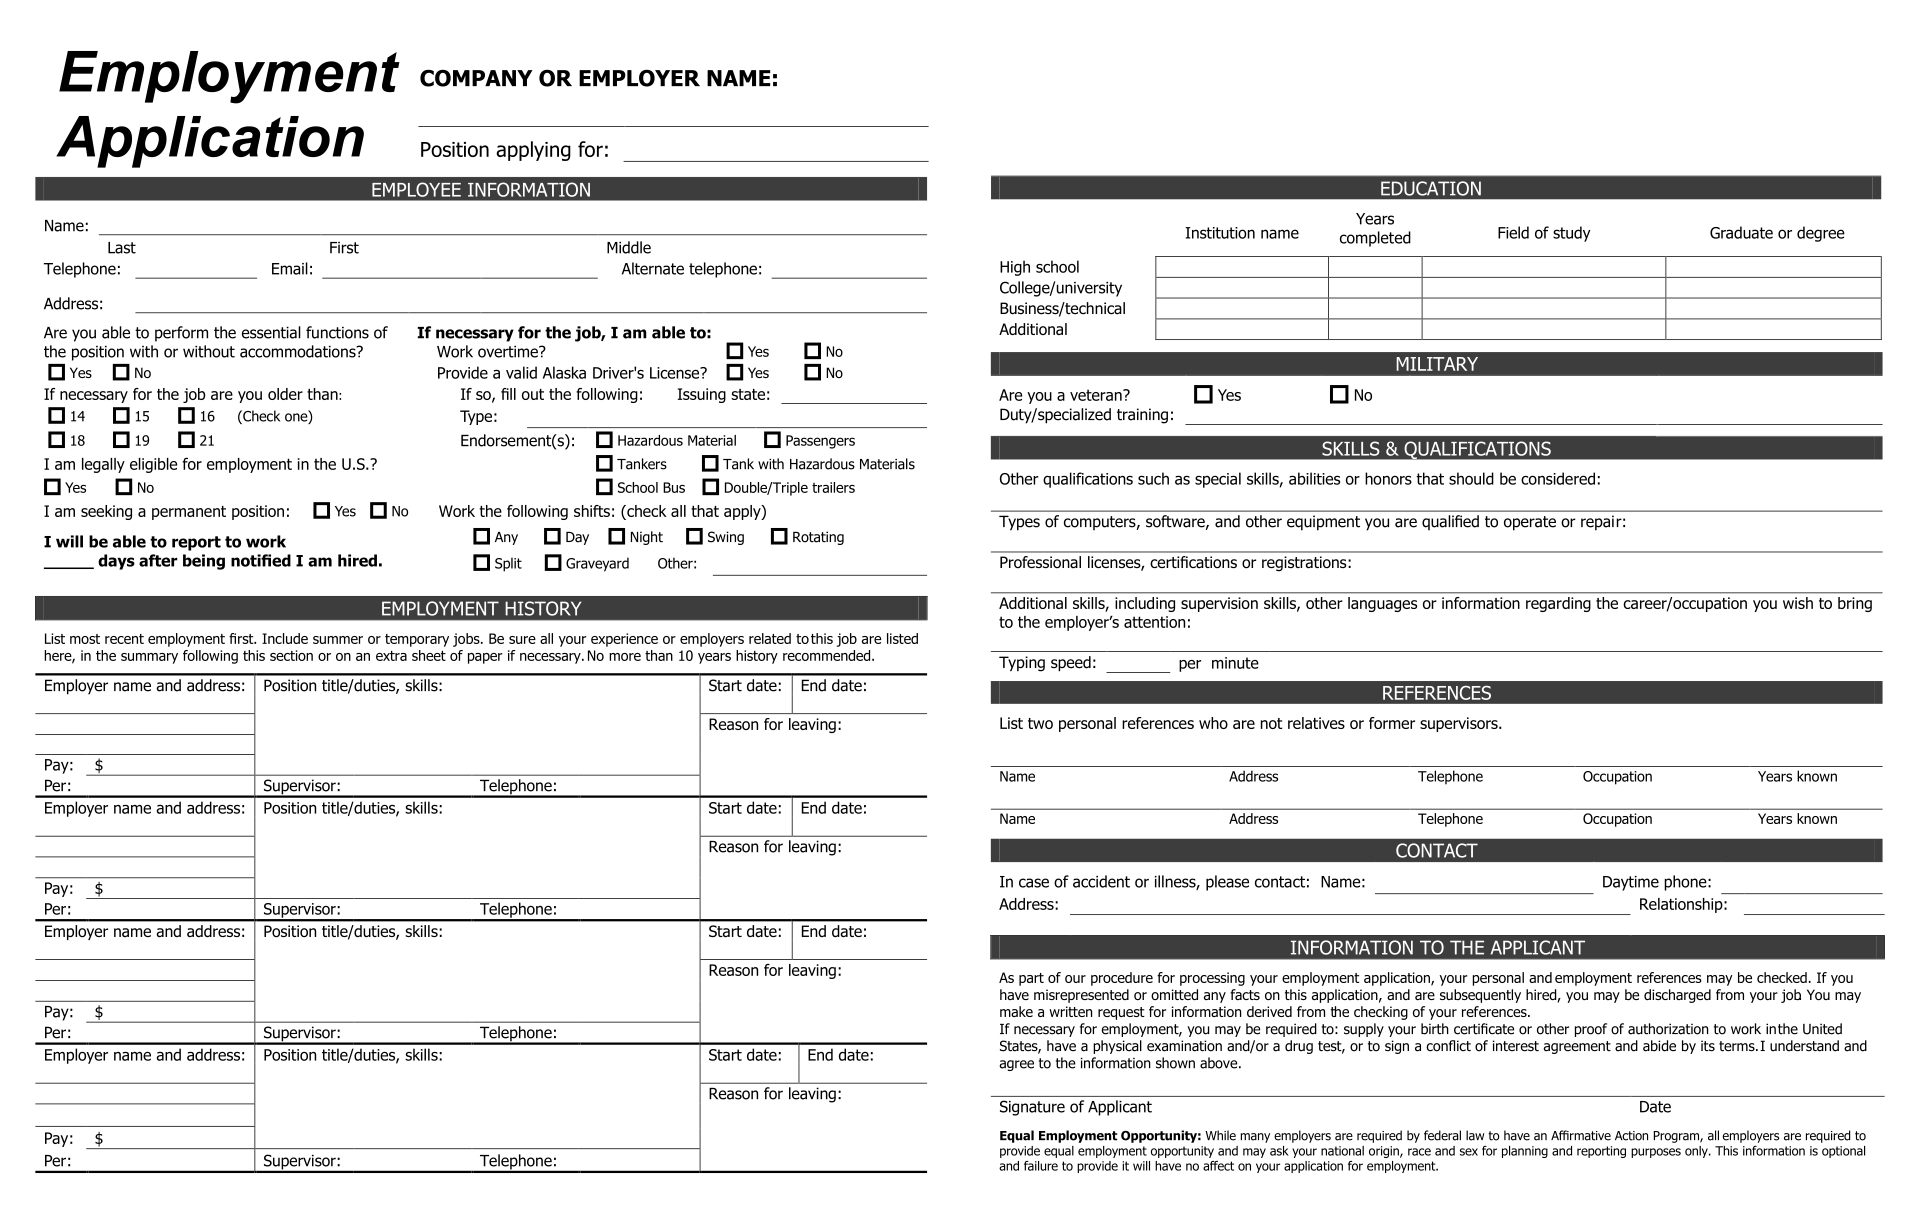 Printable Blank Application Form For Employment